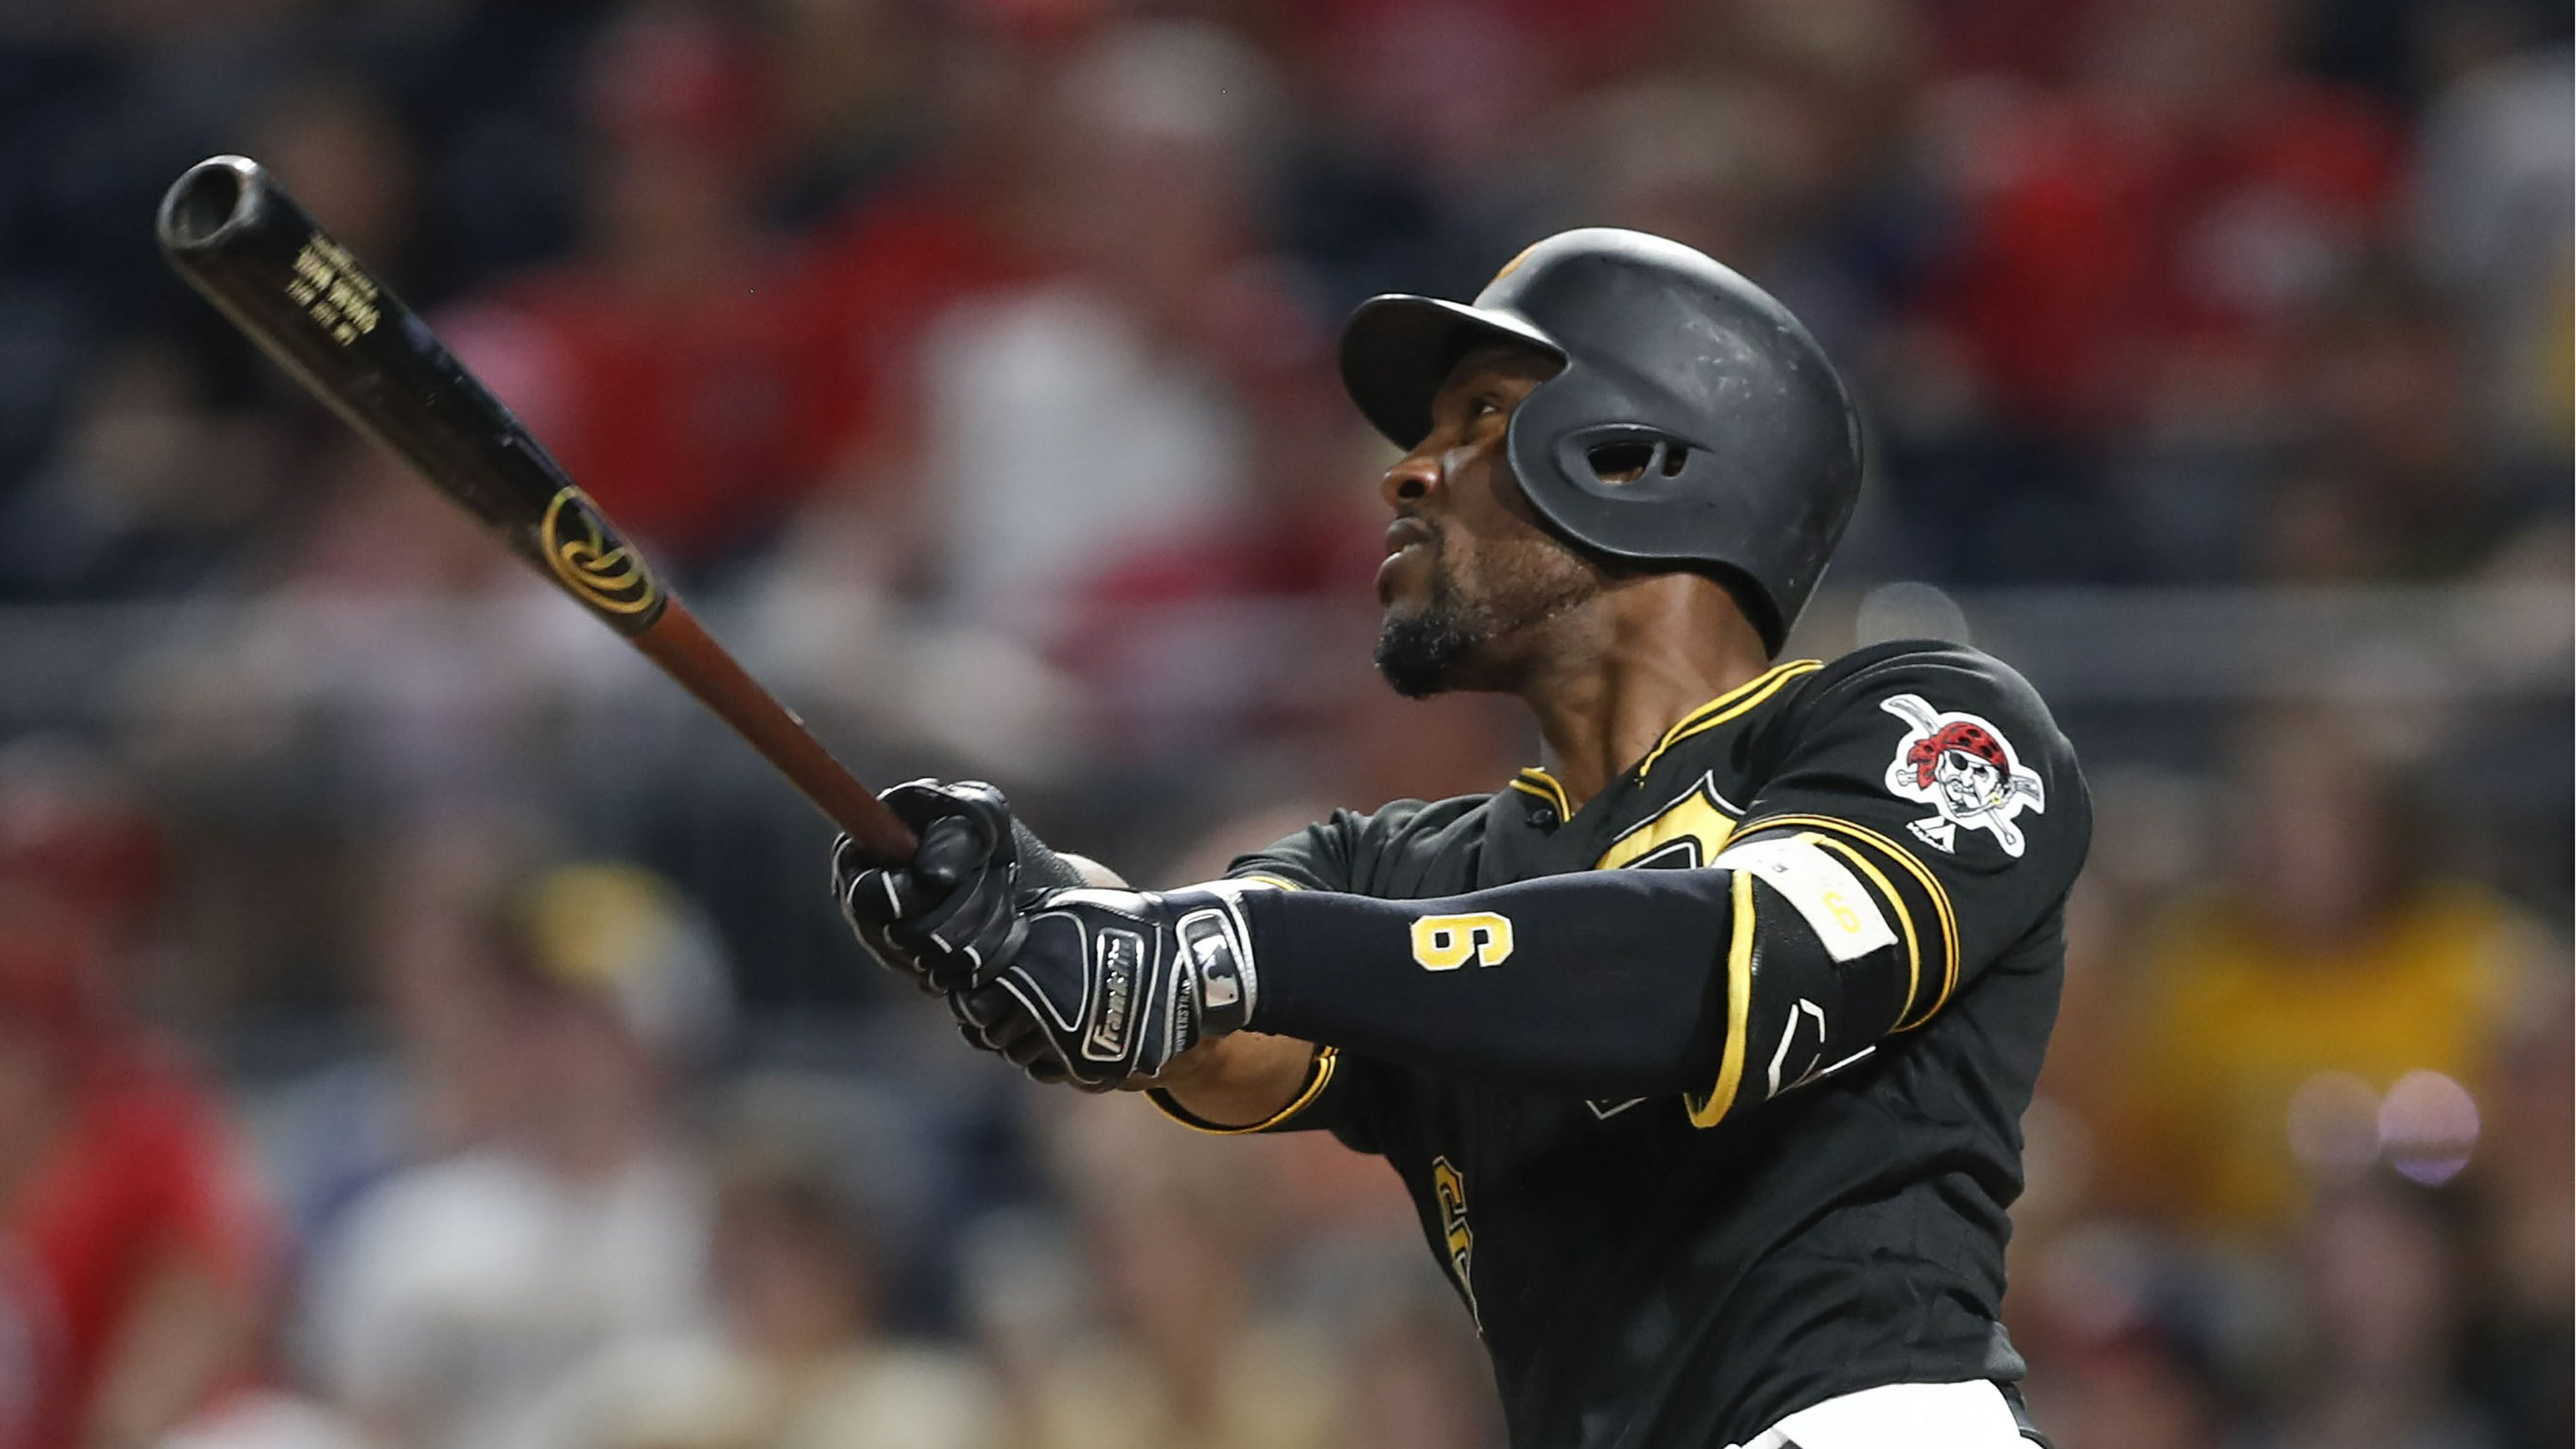 Second helping of Marte gives D-backs lineup another boost